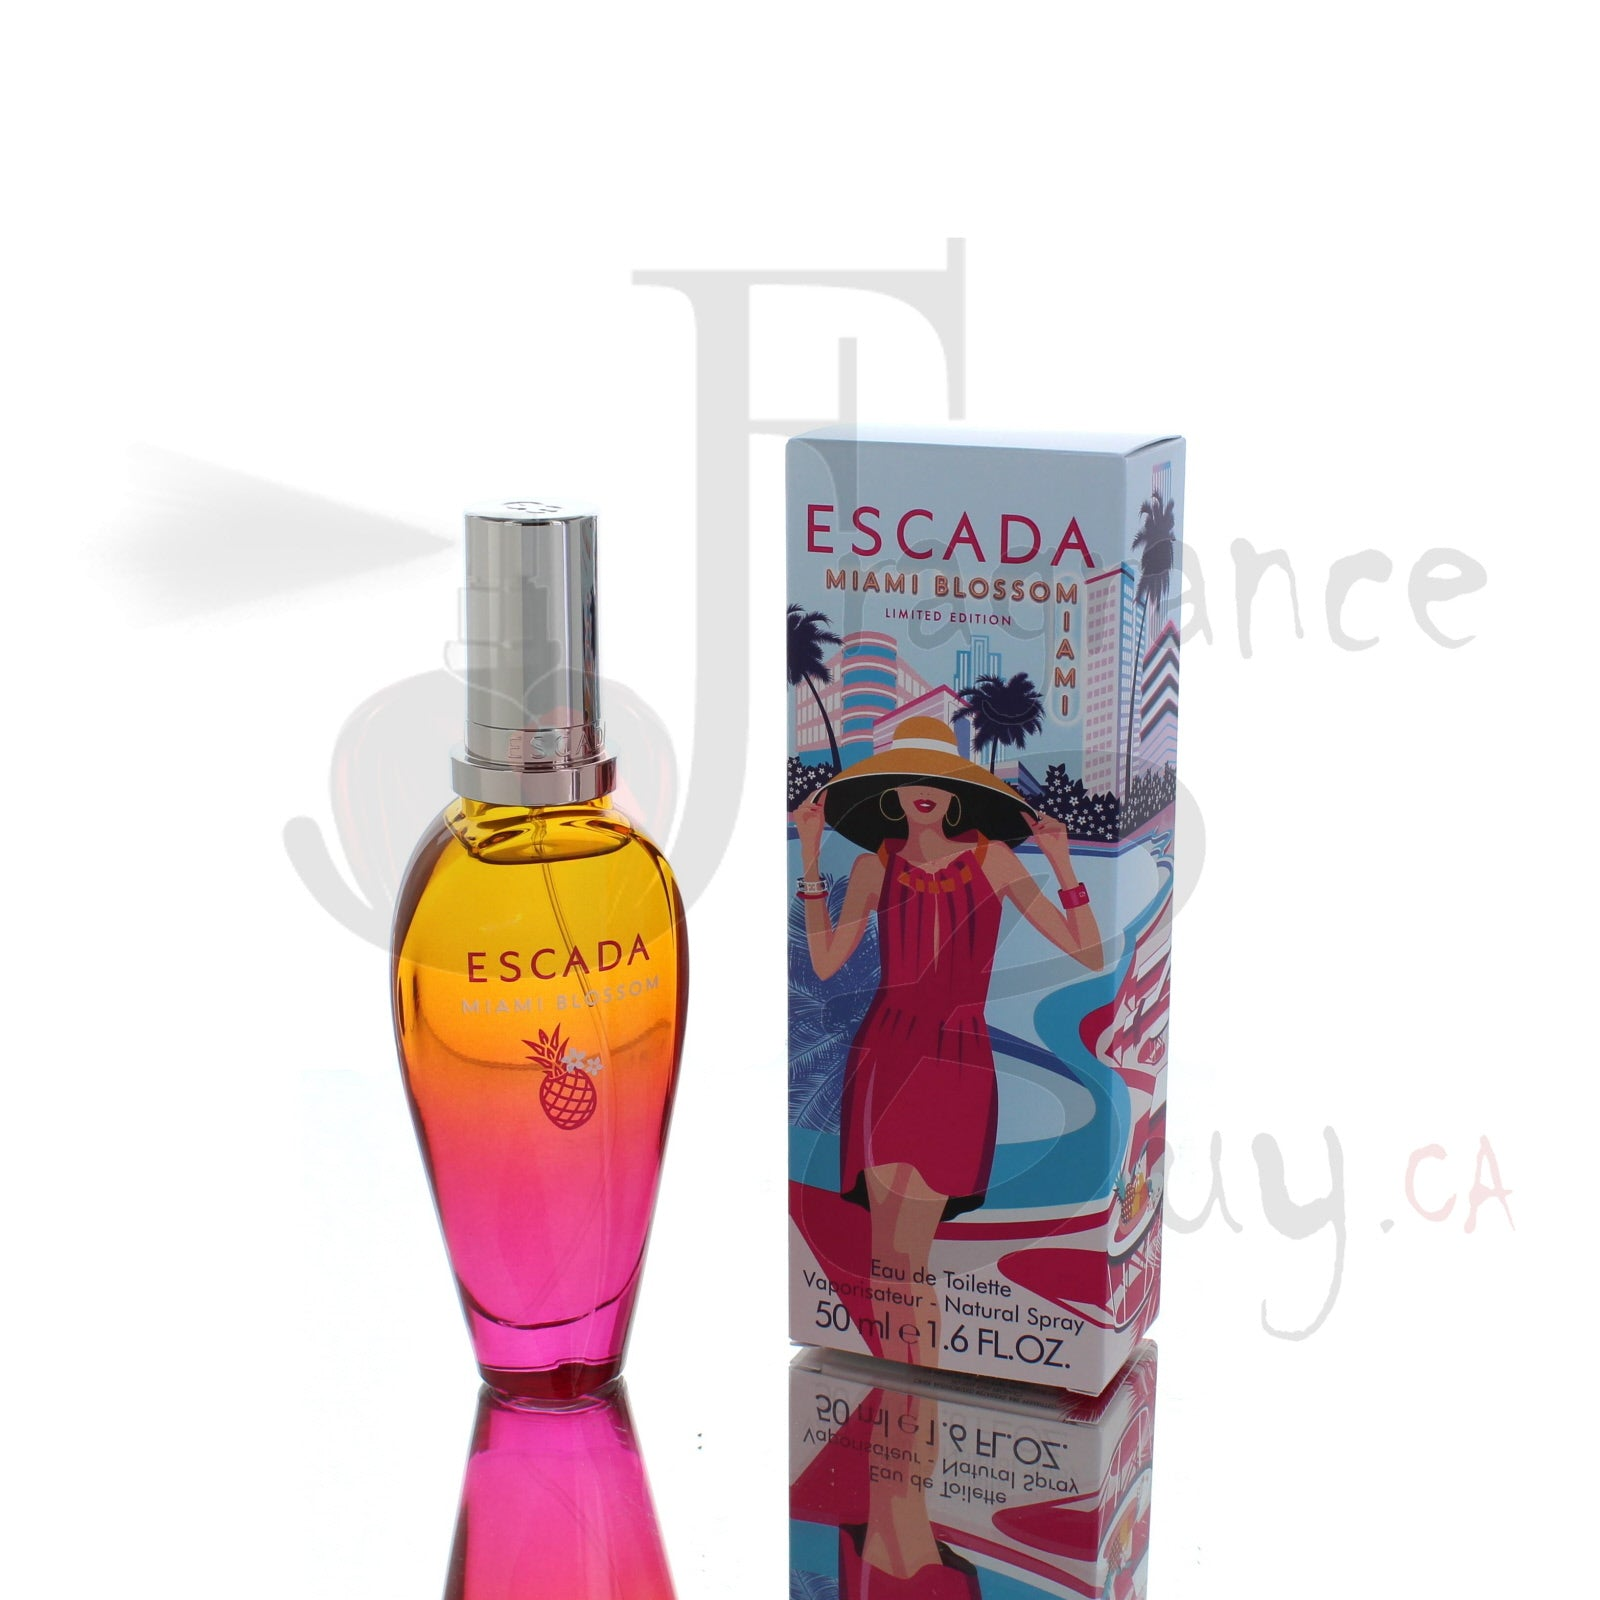 Escada Miami Blossom (2019) For Woman